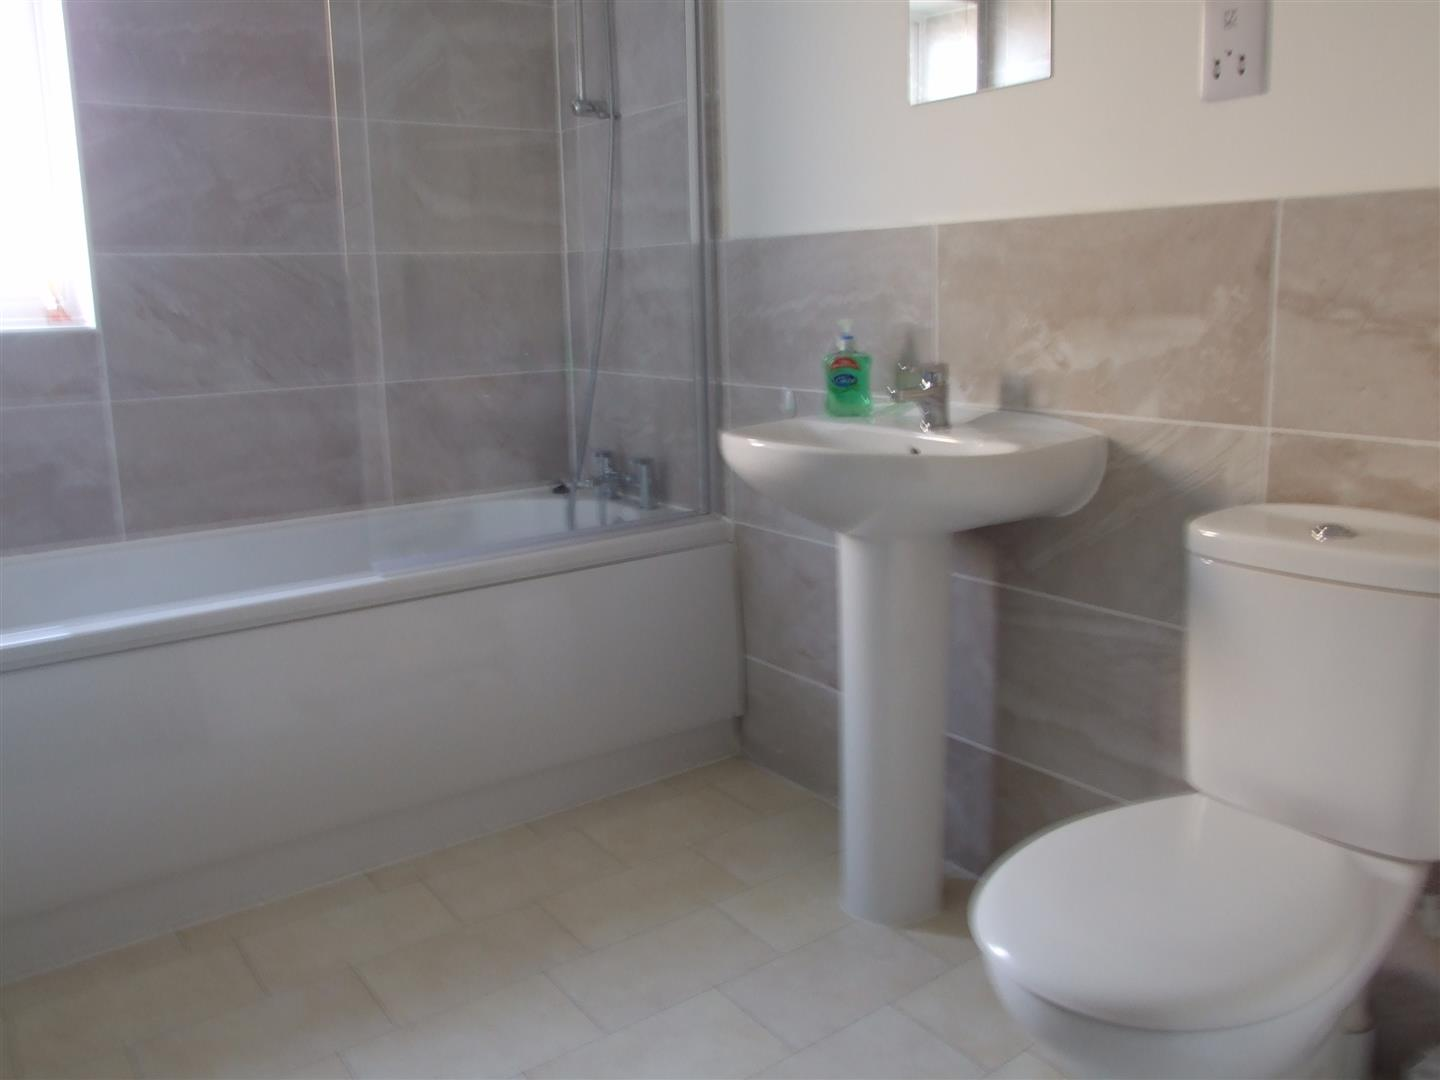 3 bed house to rent in Long Sutton, PE12 9GZ  - Property Image 4